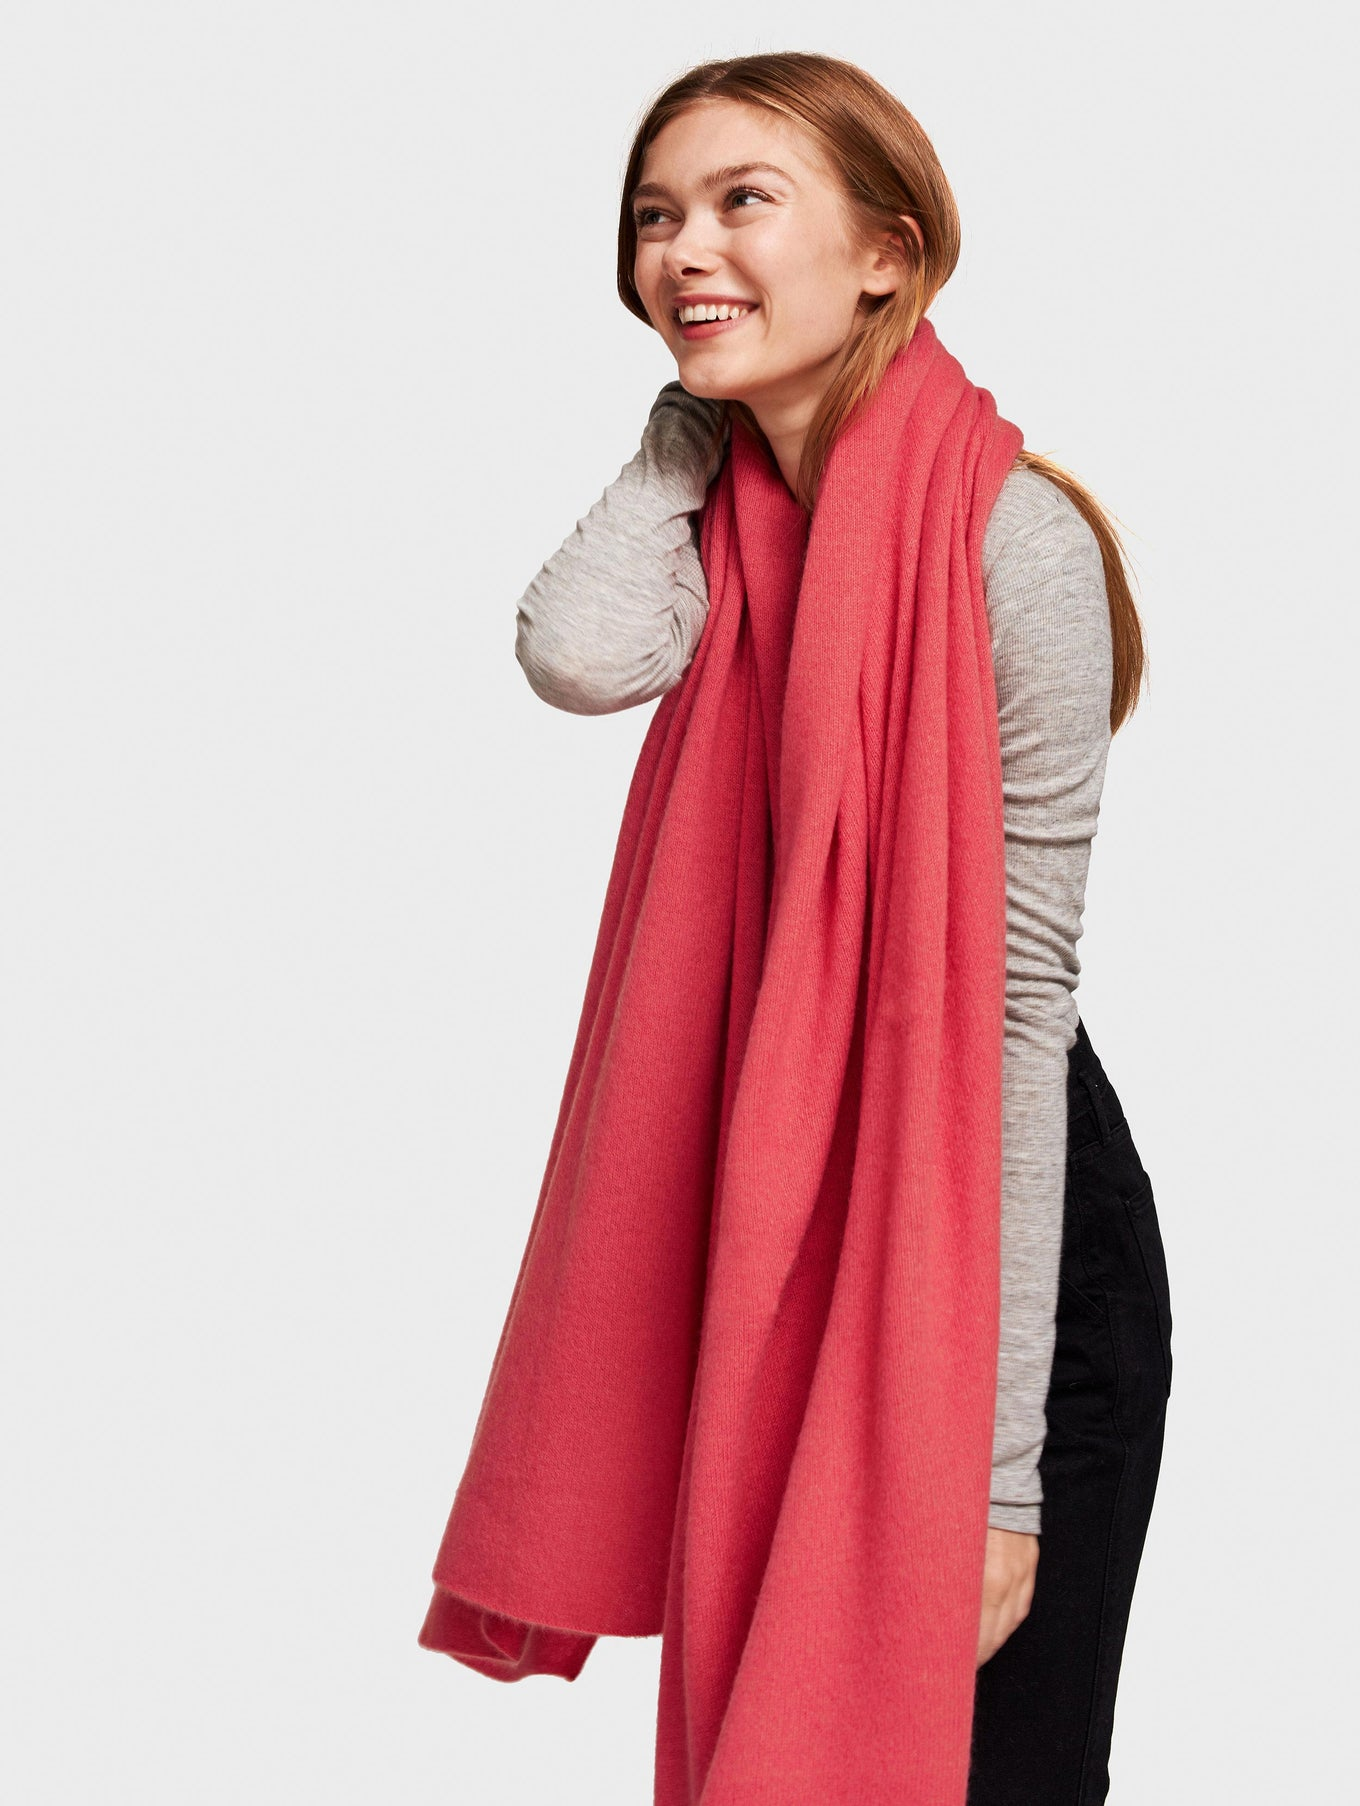 Cashmere Travel Wrap - Sangria Heather - Image 2